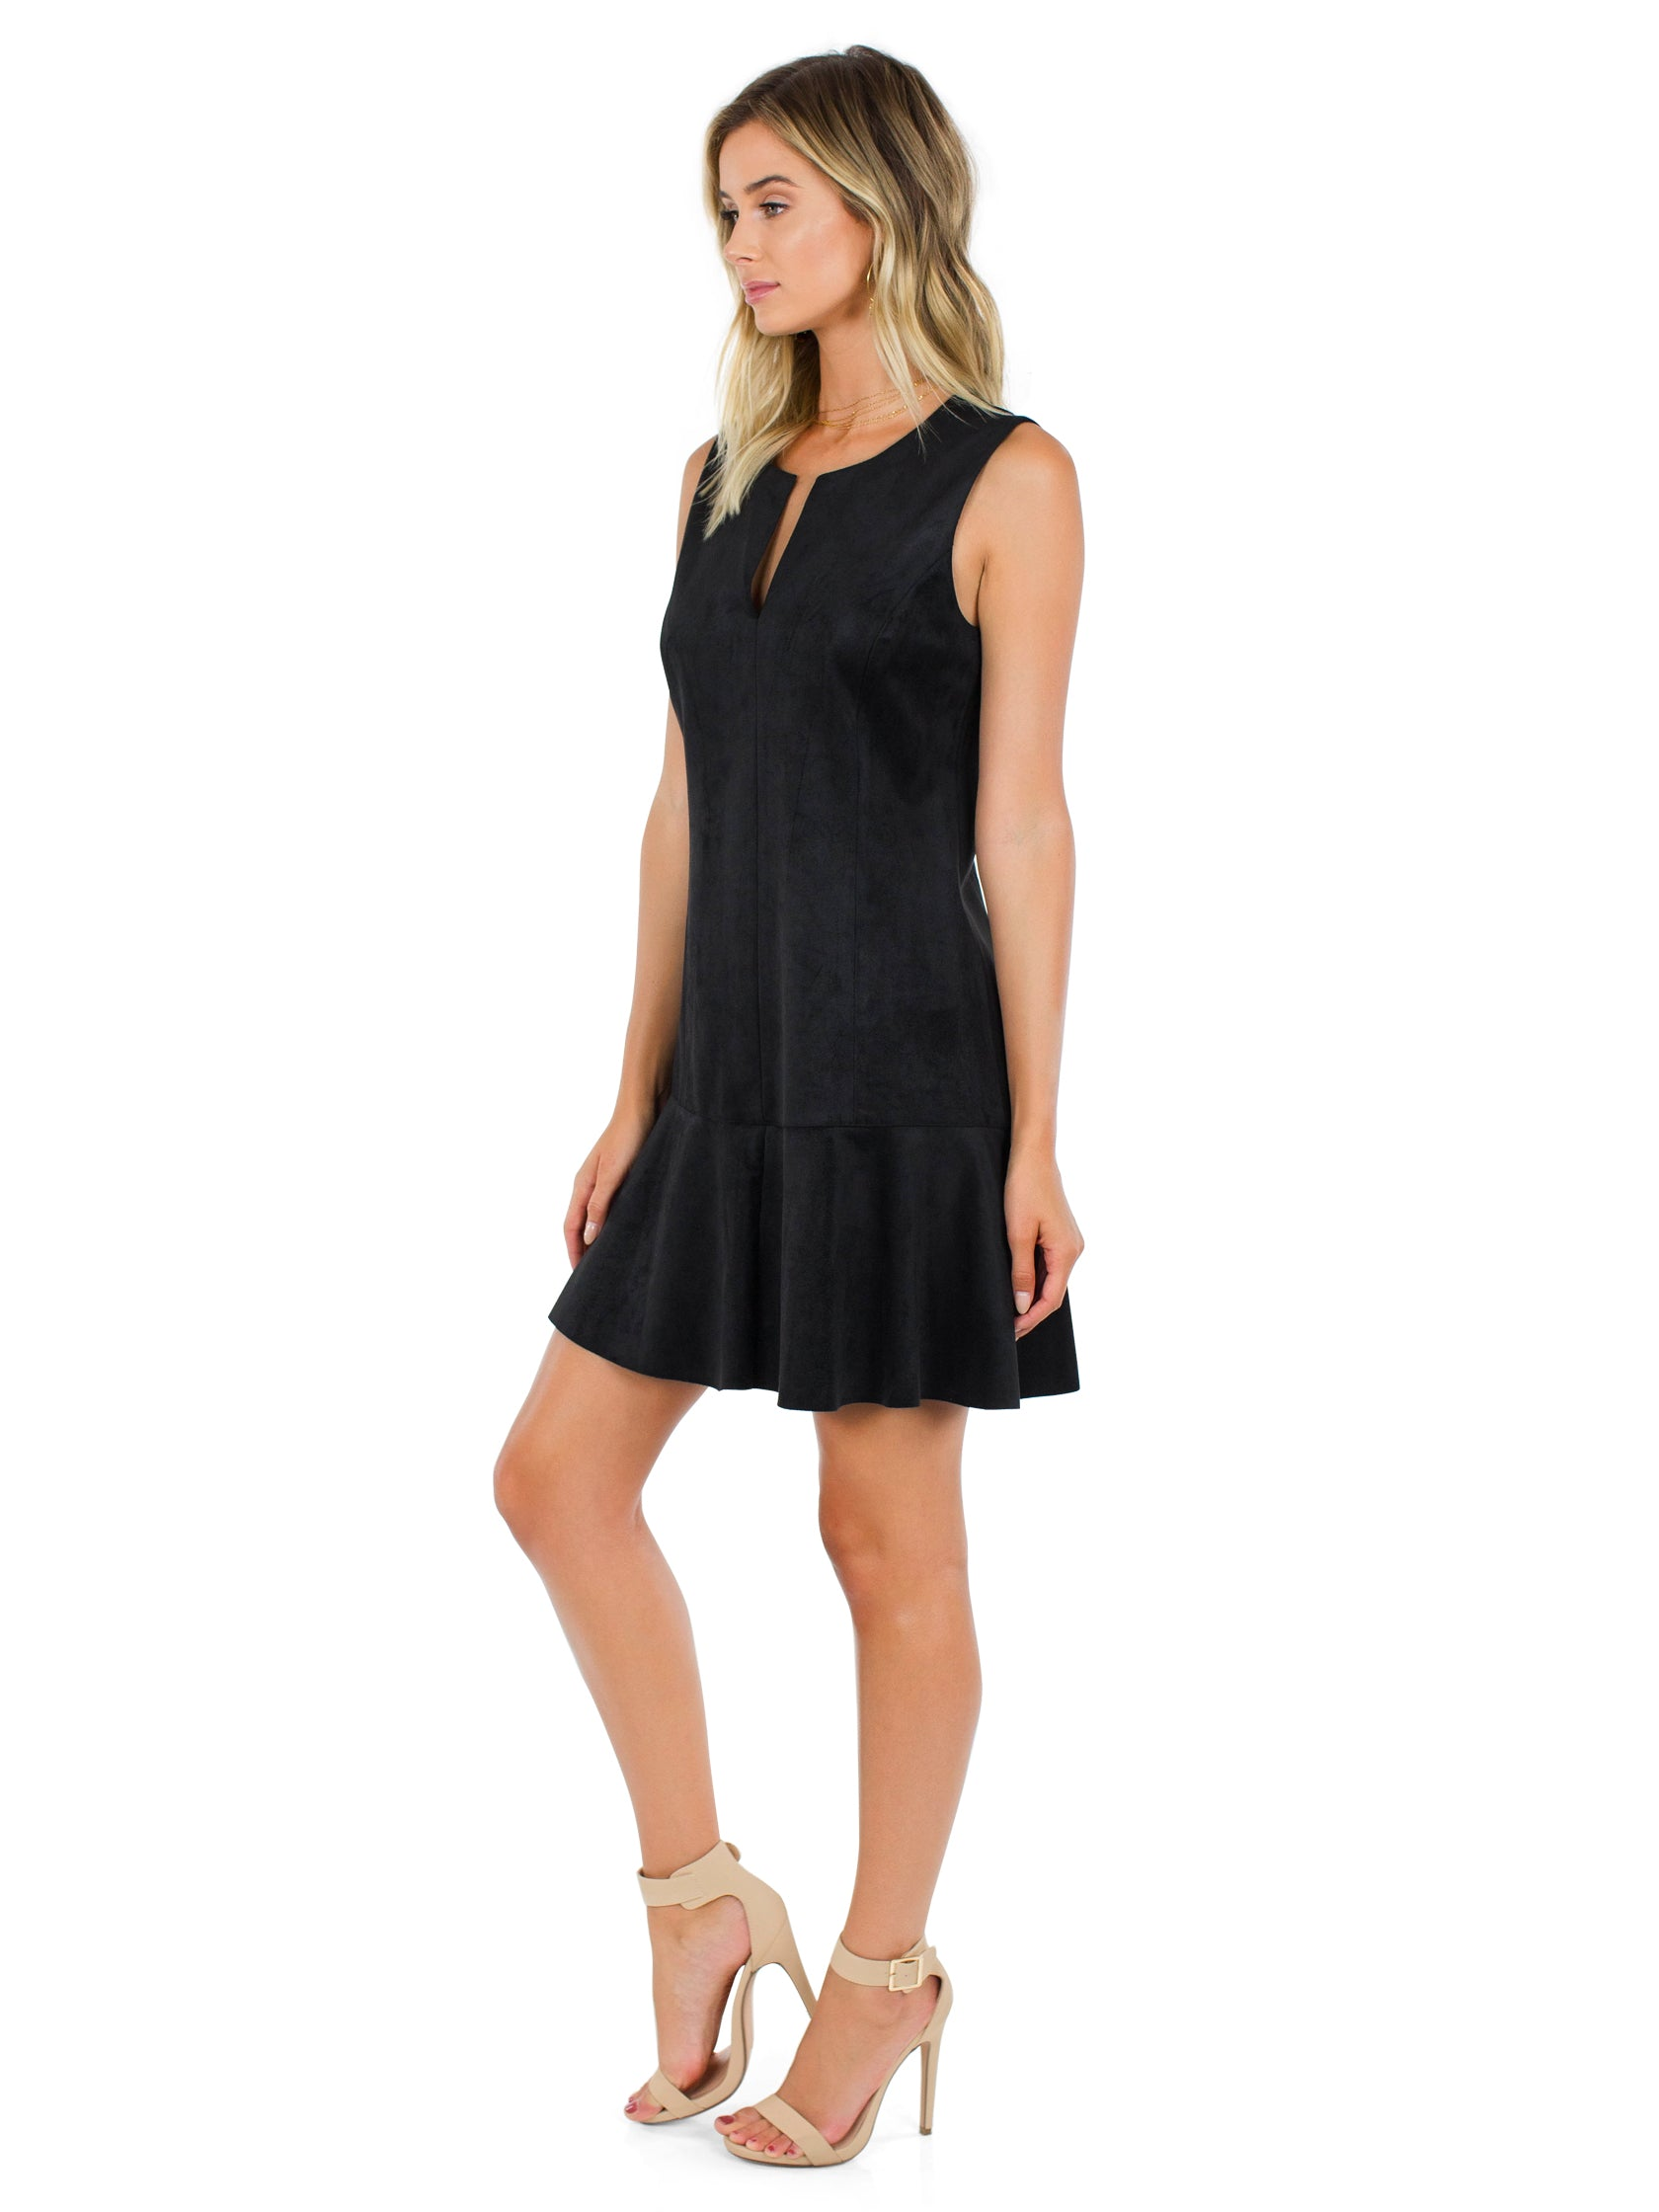 Woman wearing a dress rental from BCBGMAXAZRIA called Adelene Faux-suede Dress